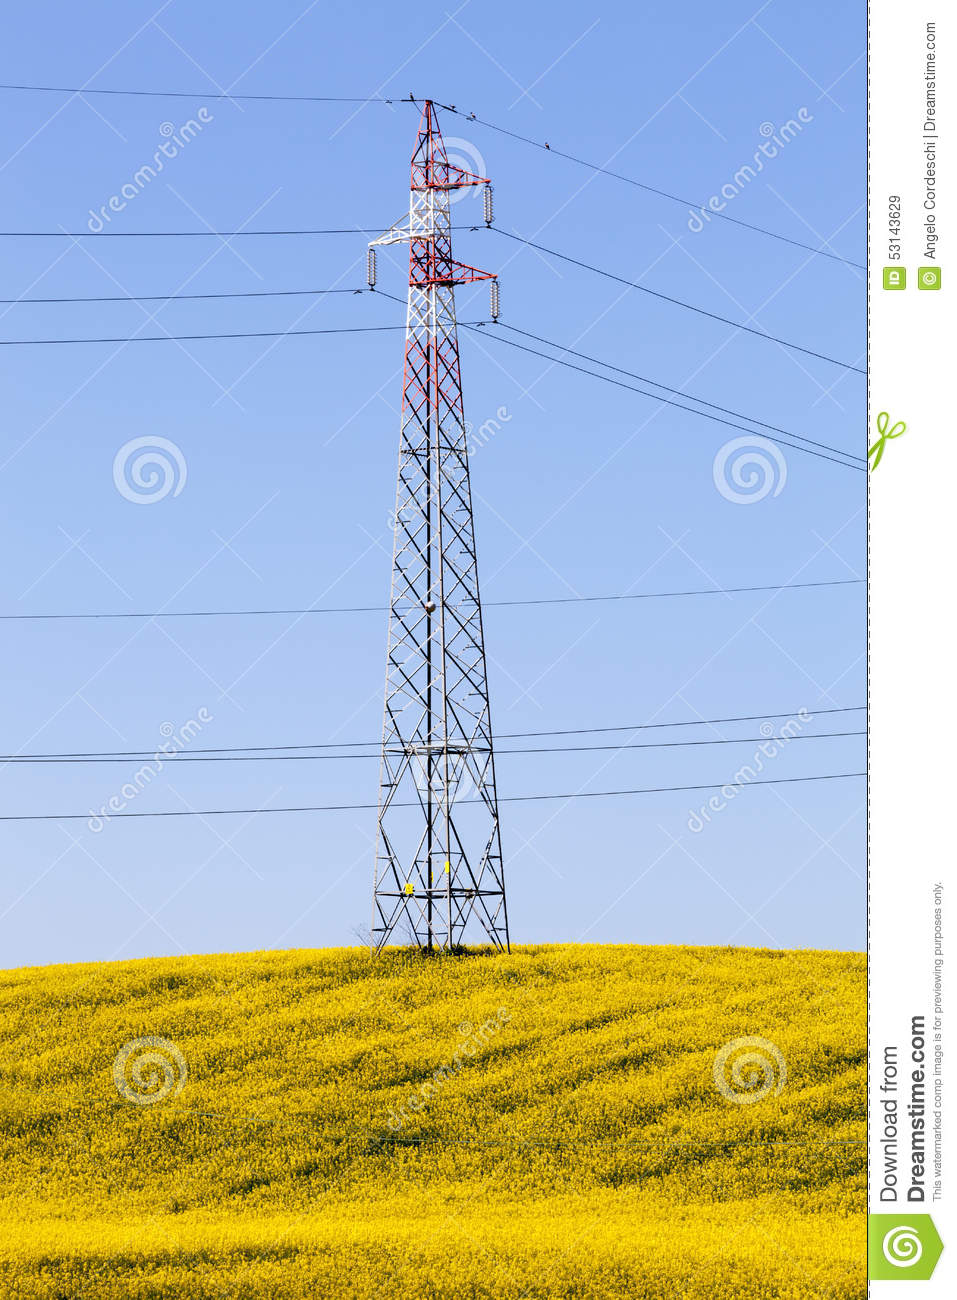 Fully flowered yellow meadow, electricity pylon & blue sky. Spring energy